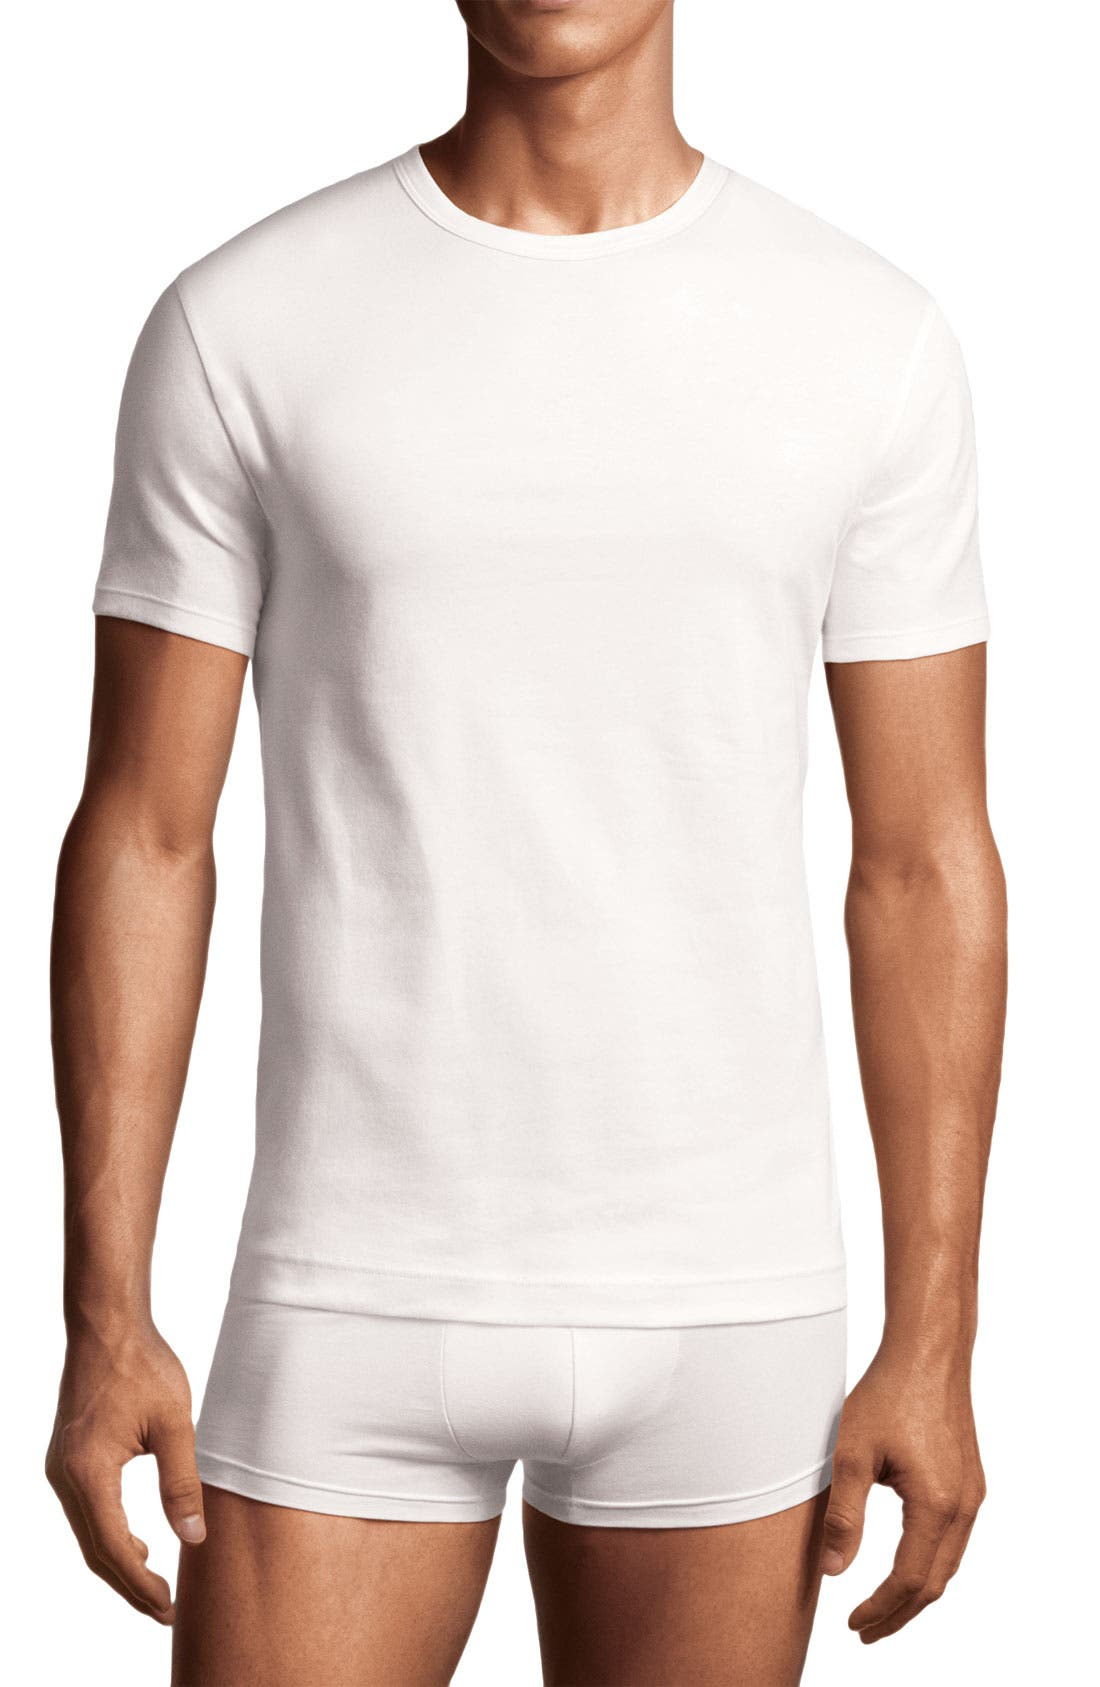 Main Image - Calvin Klein 'U2668' Stretch Cotton Crewneck T-Shirt (2-Pack)